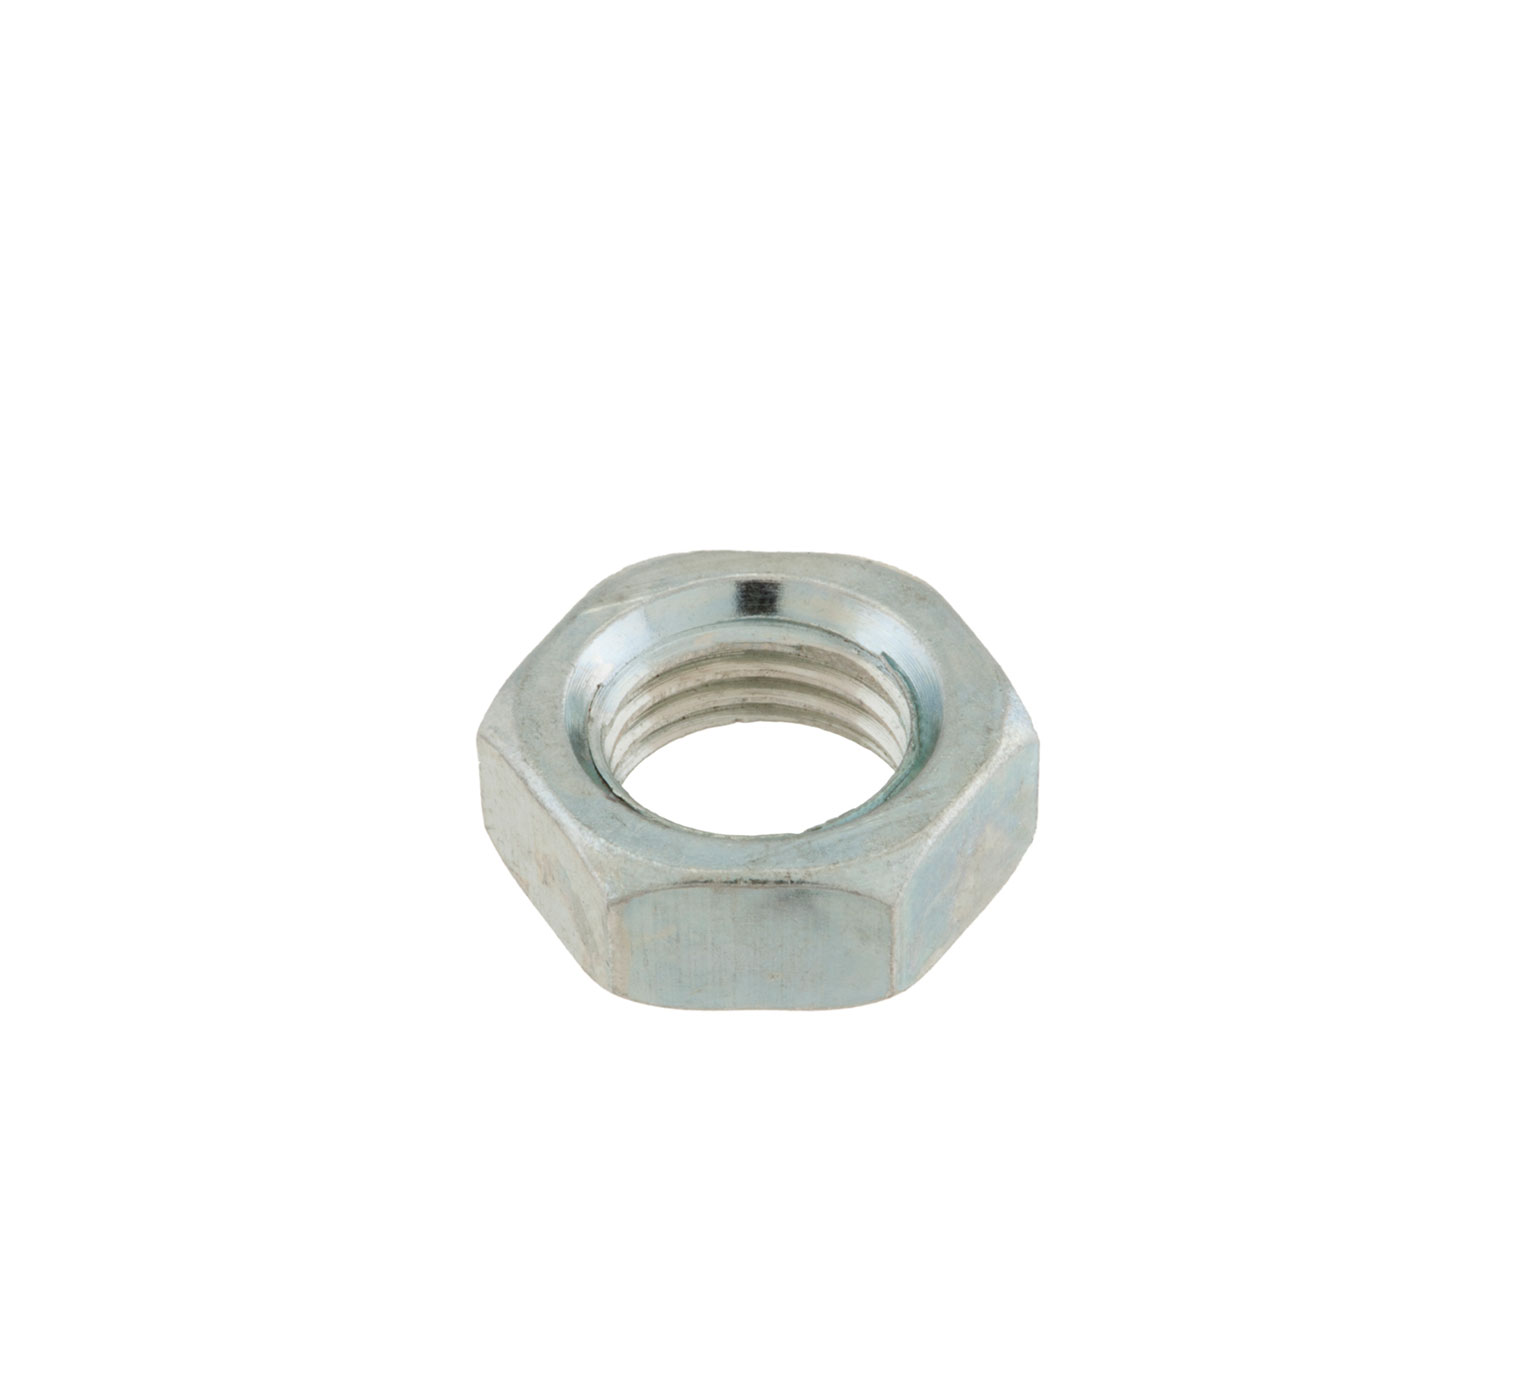 20171 Carbon Steel Hex Nut - 0.56 x 0.22 in alt 1